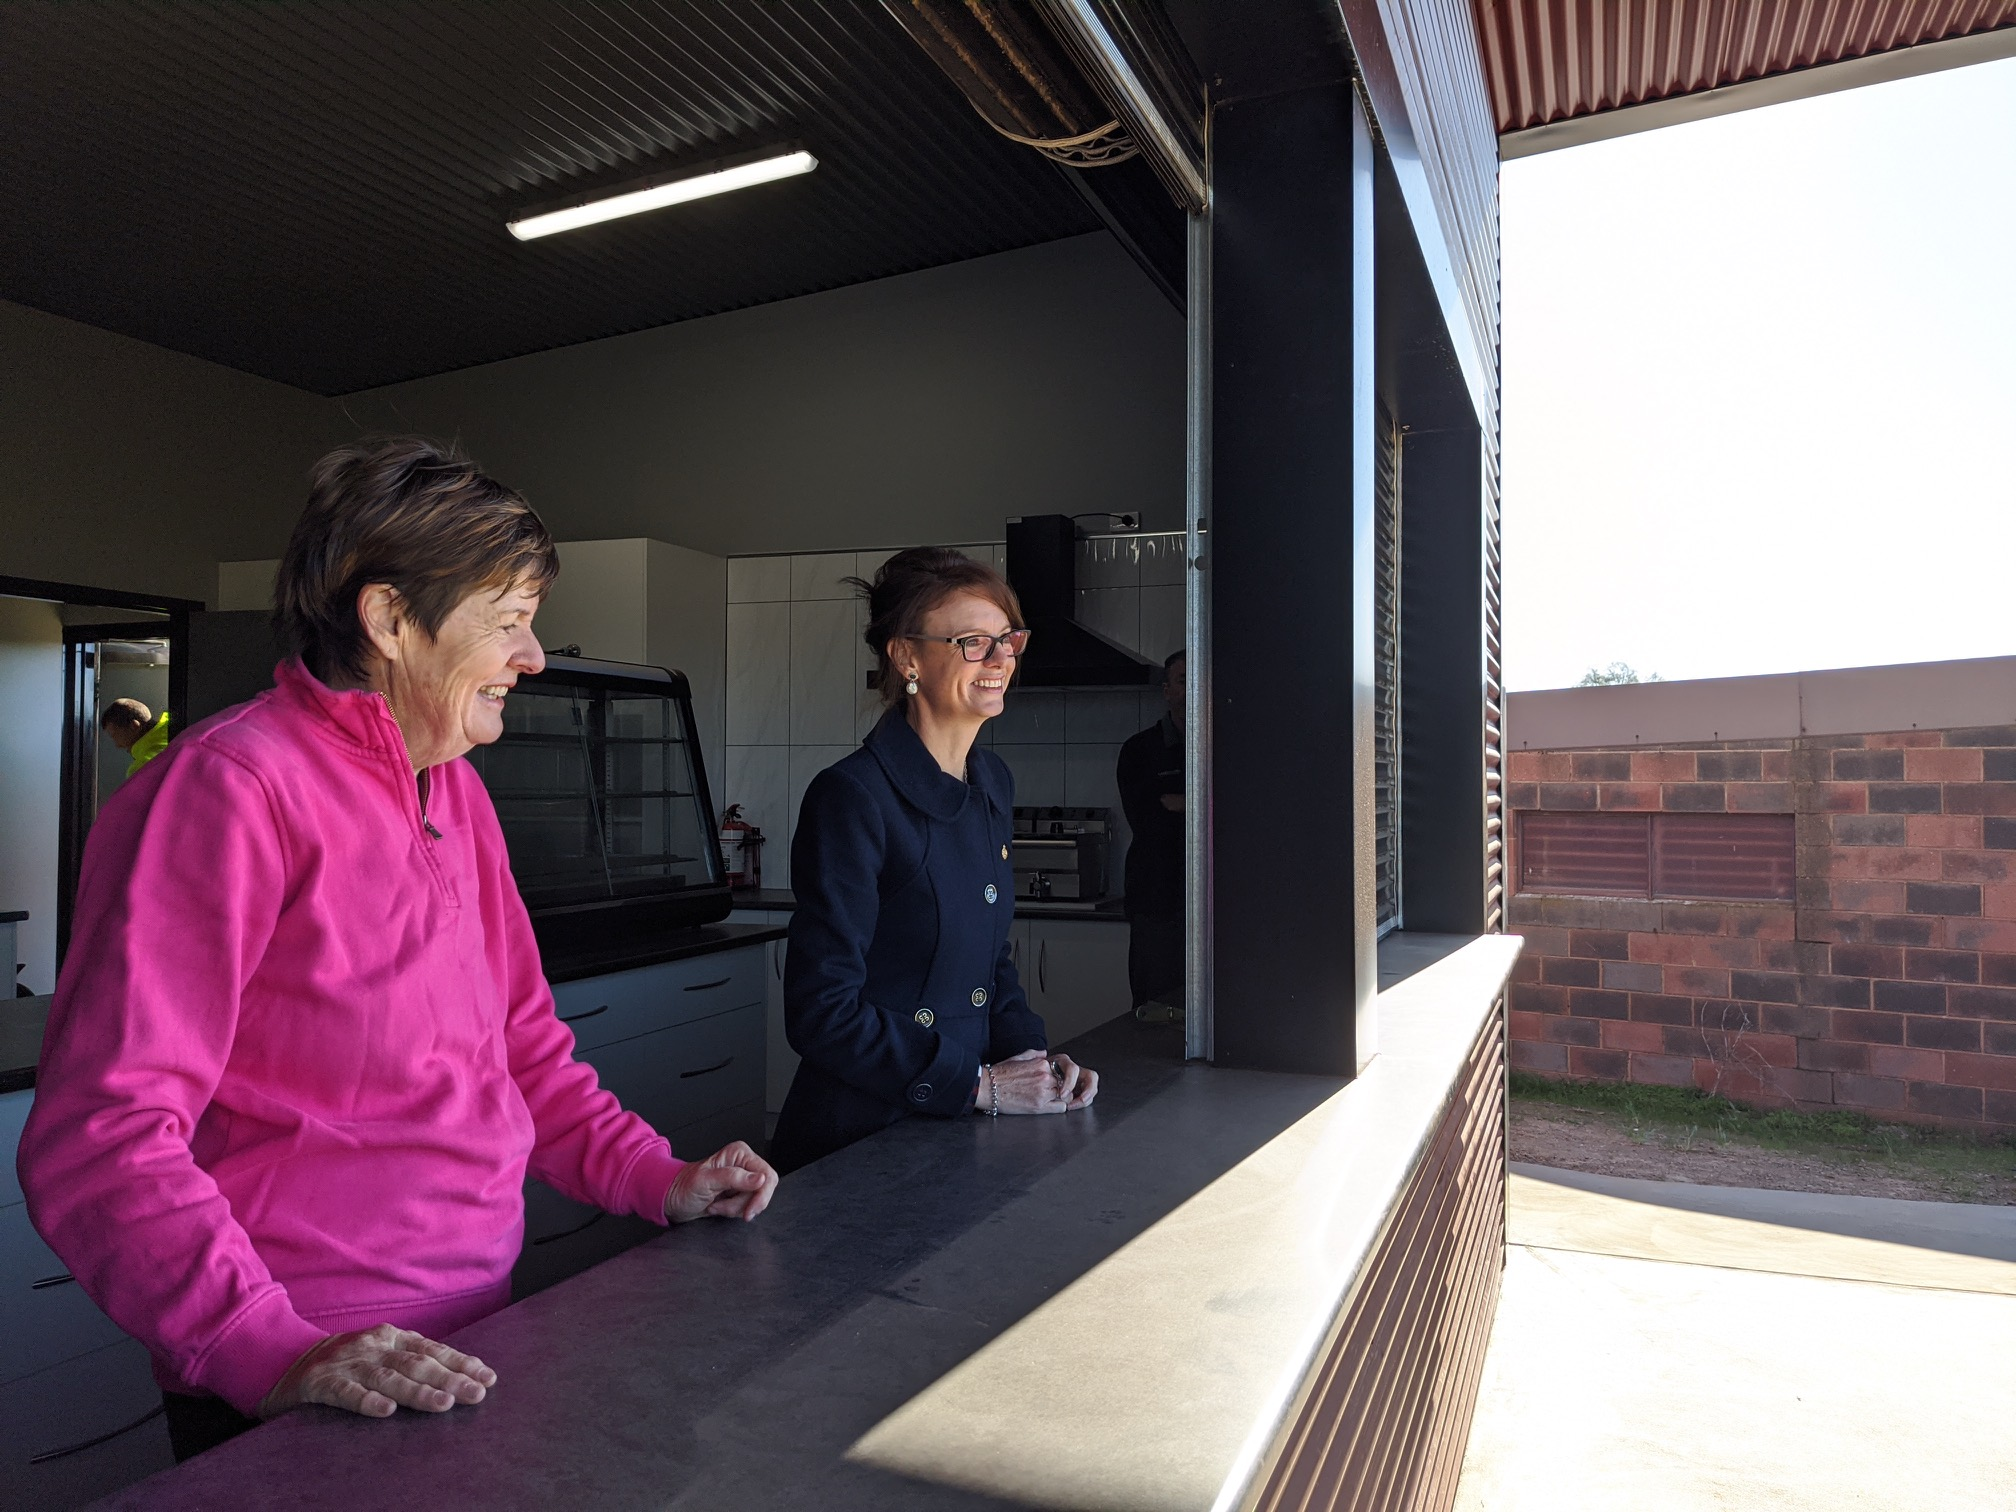 Vicki Langtry and Steph Cooke look out of the canteen window at the Marrar Football Club house.